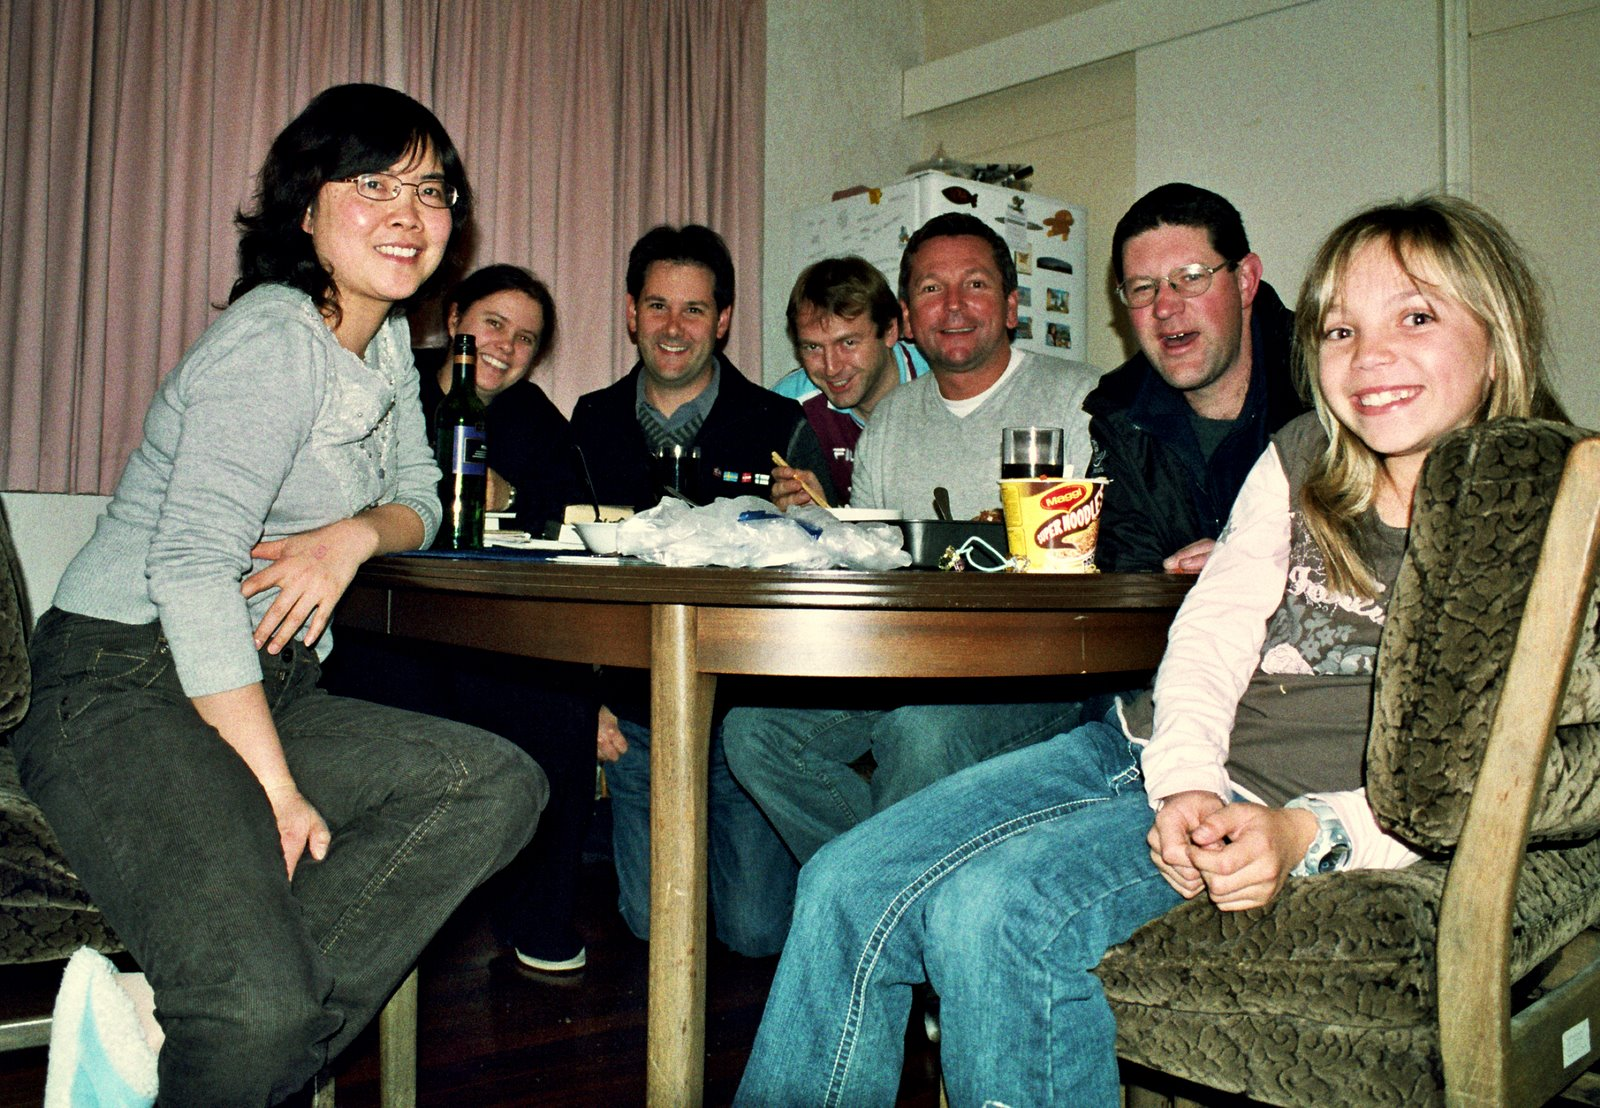 [Flatmates+Cathy,+Nicola,+David,+Neil,+Tim+and+Jessica.jpg]